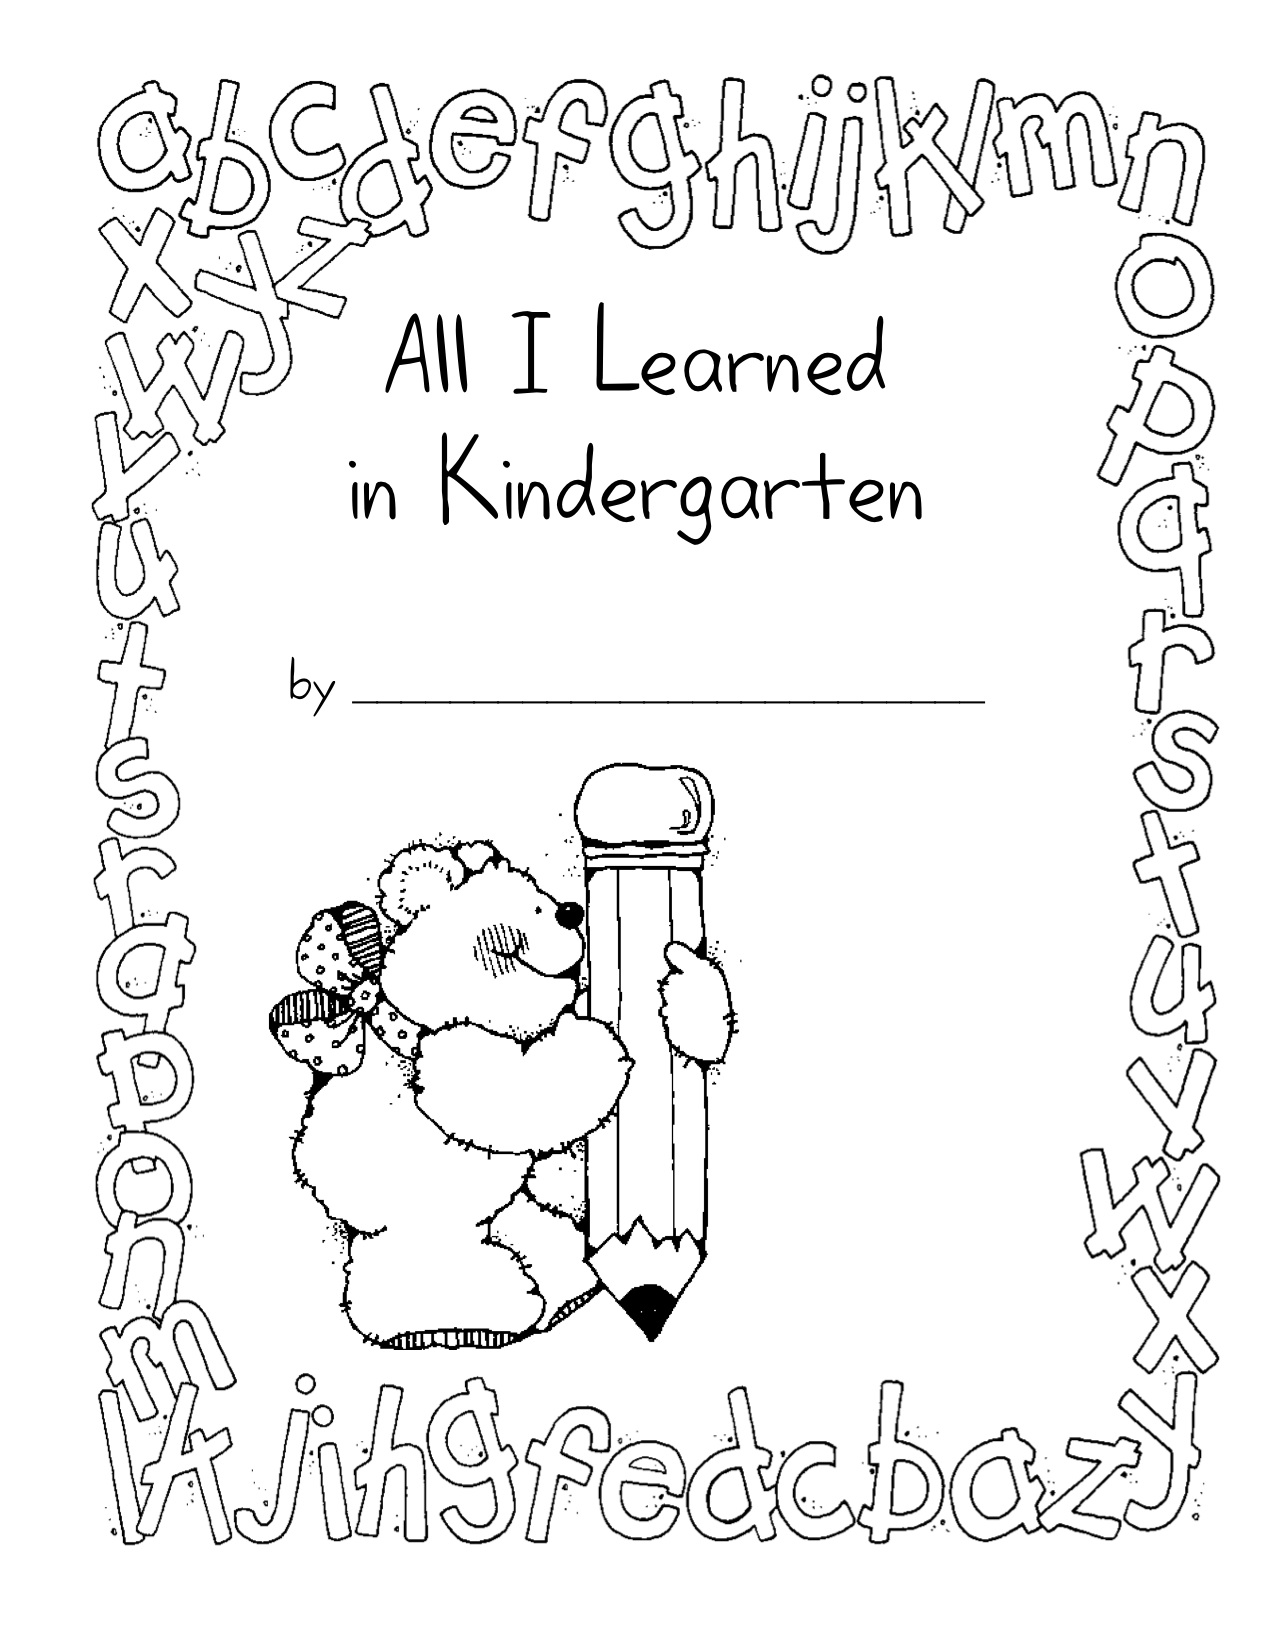 Kindergarten book cover ideas ~ all i learned in kindergarten nana